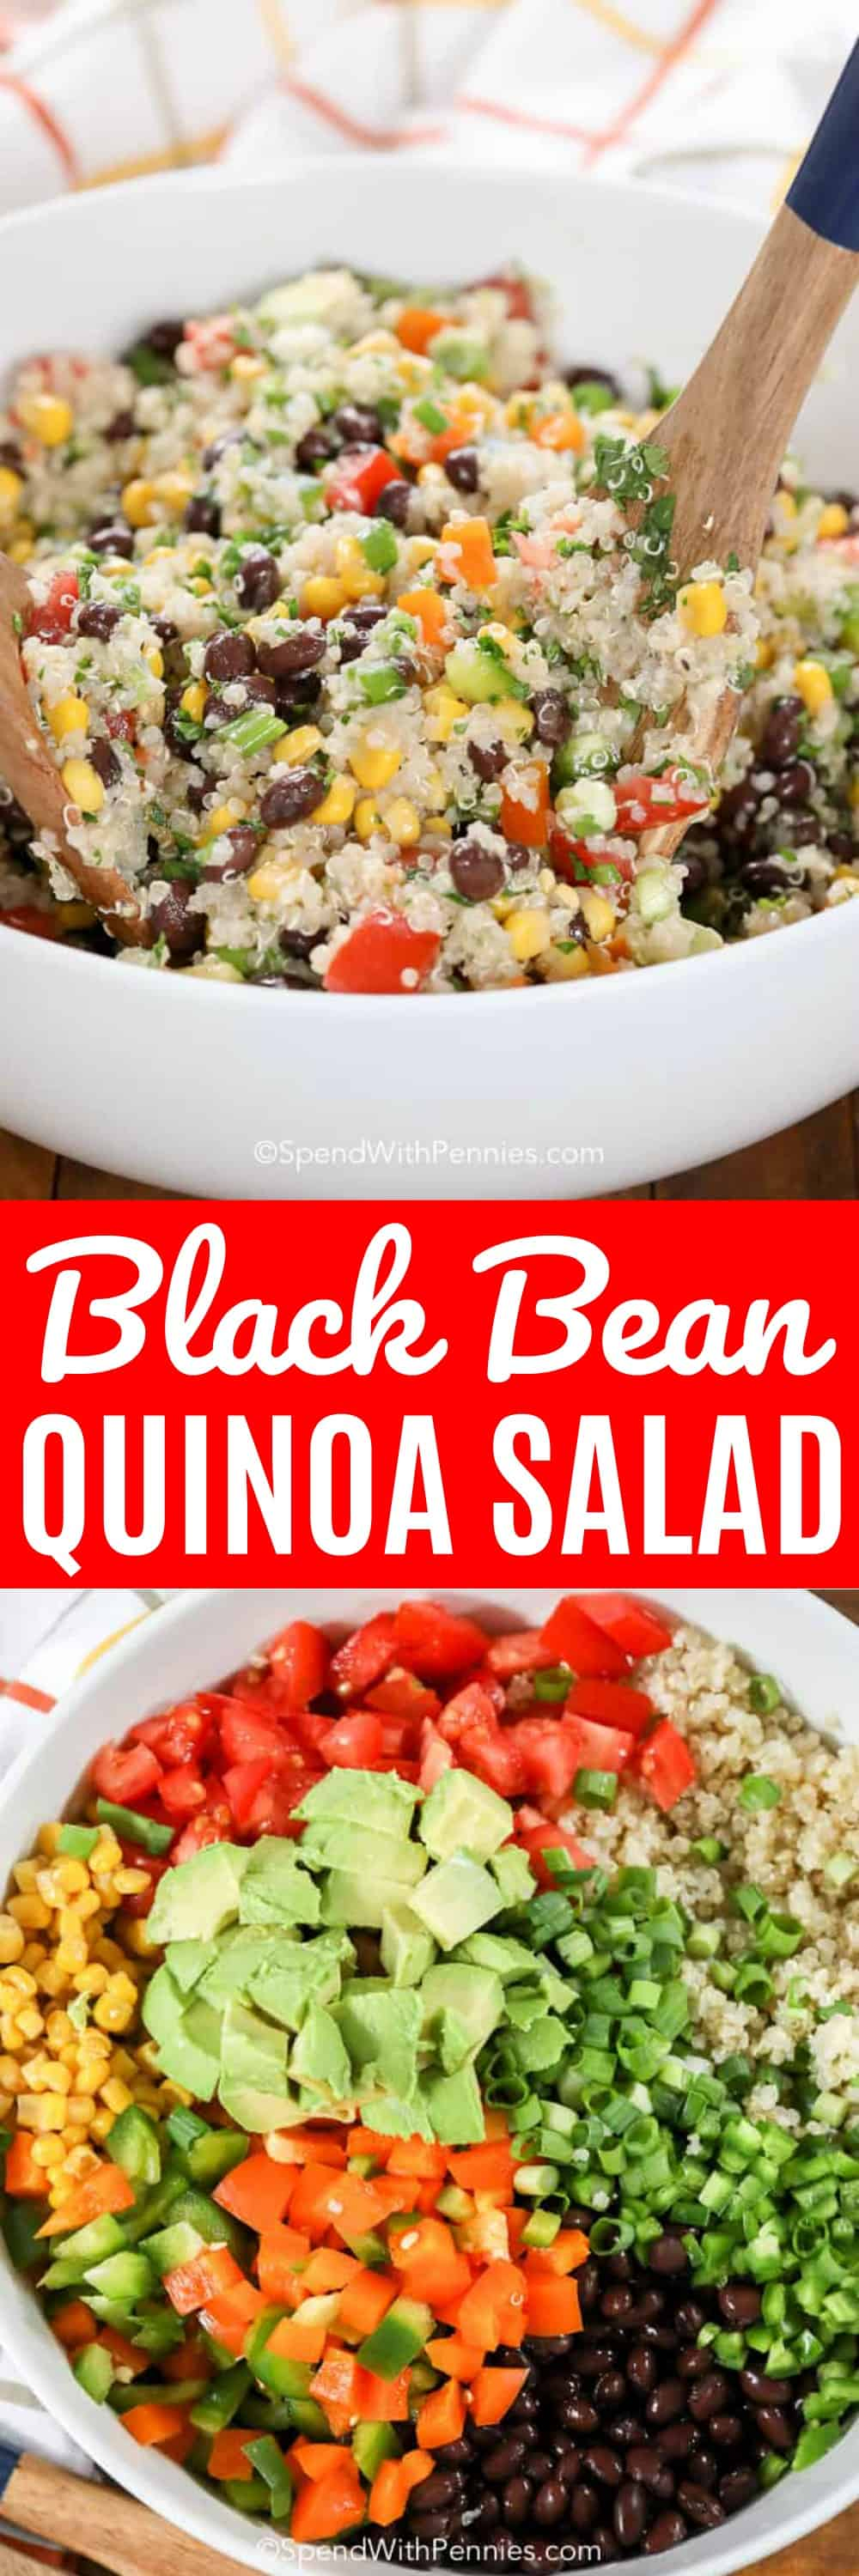 This easy Black Bean Quinoa Salad is deliciously simple, full of fresh veggies all tossed in a zesty lime dressing, this is the perfect easy lunch or dinner.#quinoa #quinoasalad #healthysalad #sidedish #healthyrecipe #blackbeansalad #cowboycaviar